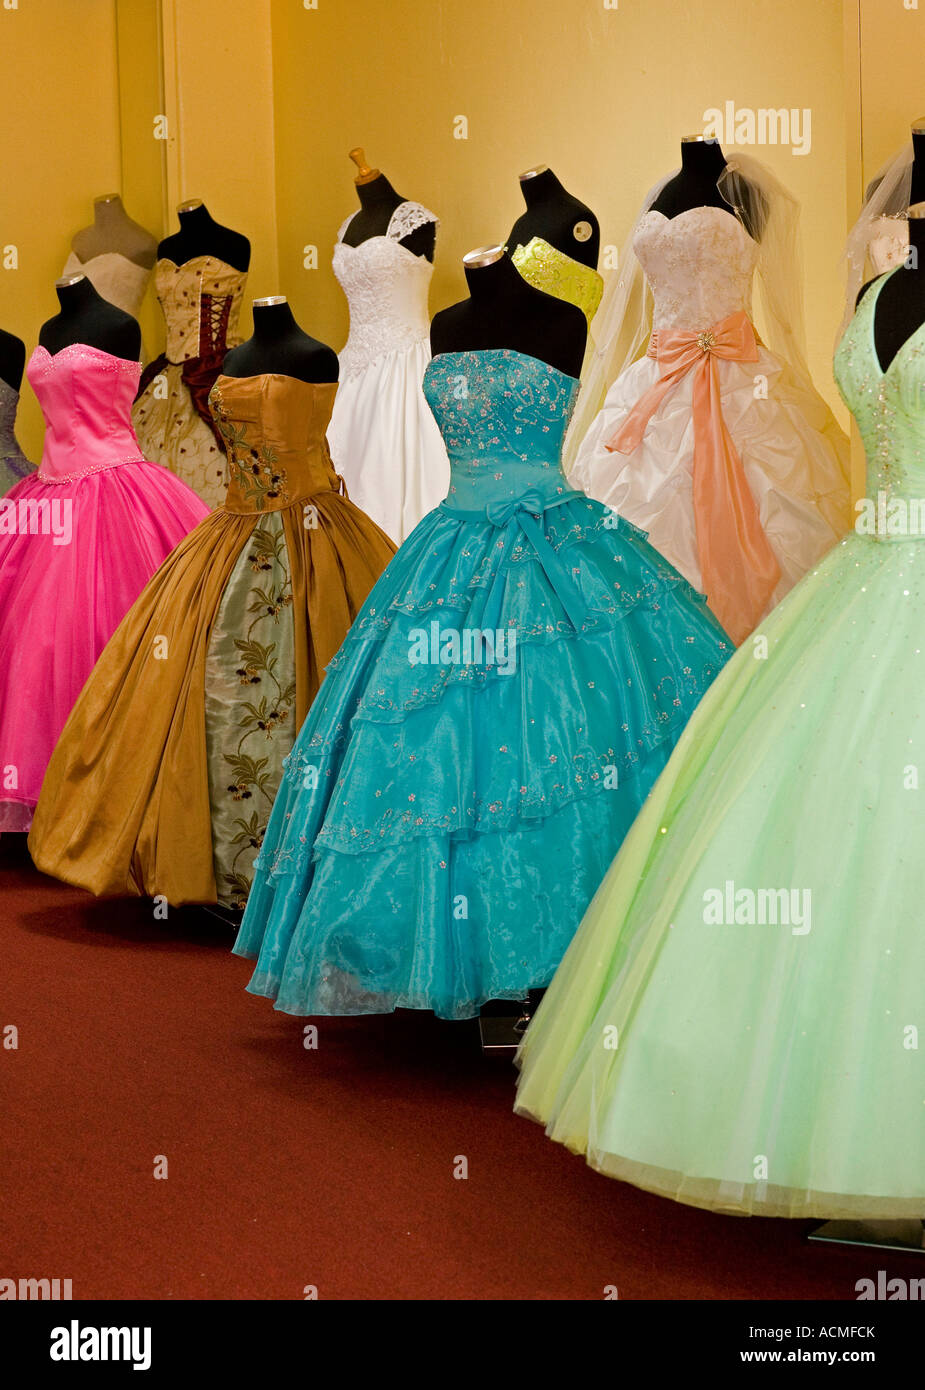 f461263f37b dresses for weddings and Quinceanera Bridal shop Broadway downtown Los  Angeles California United States of America